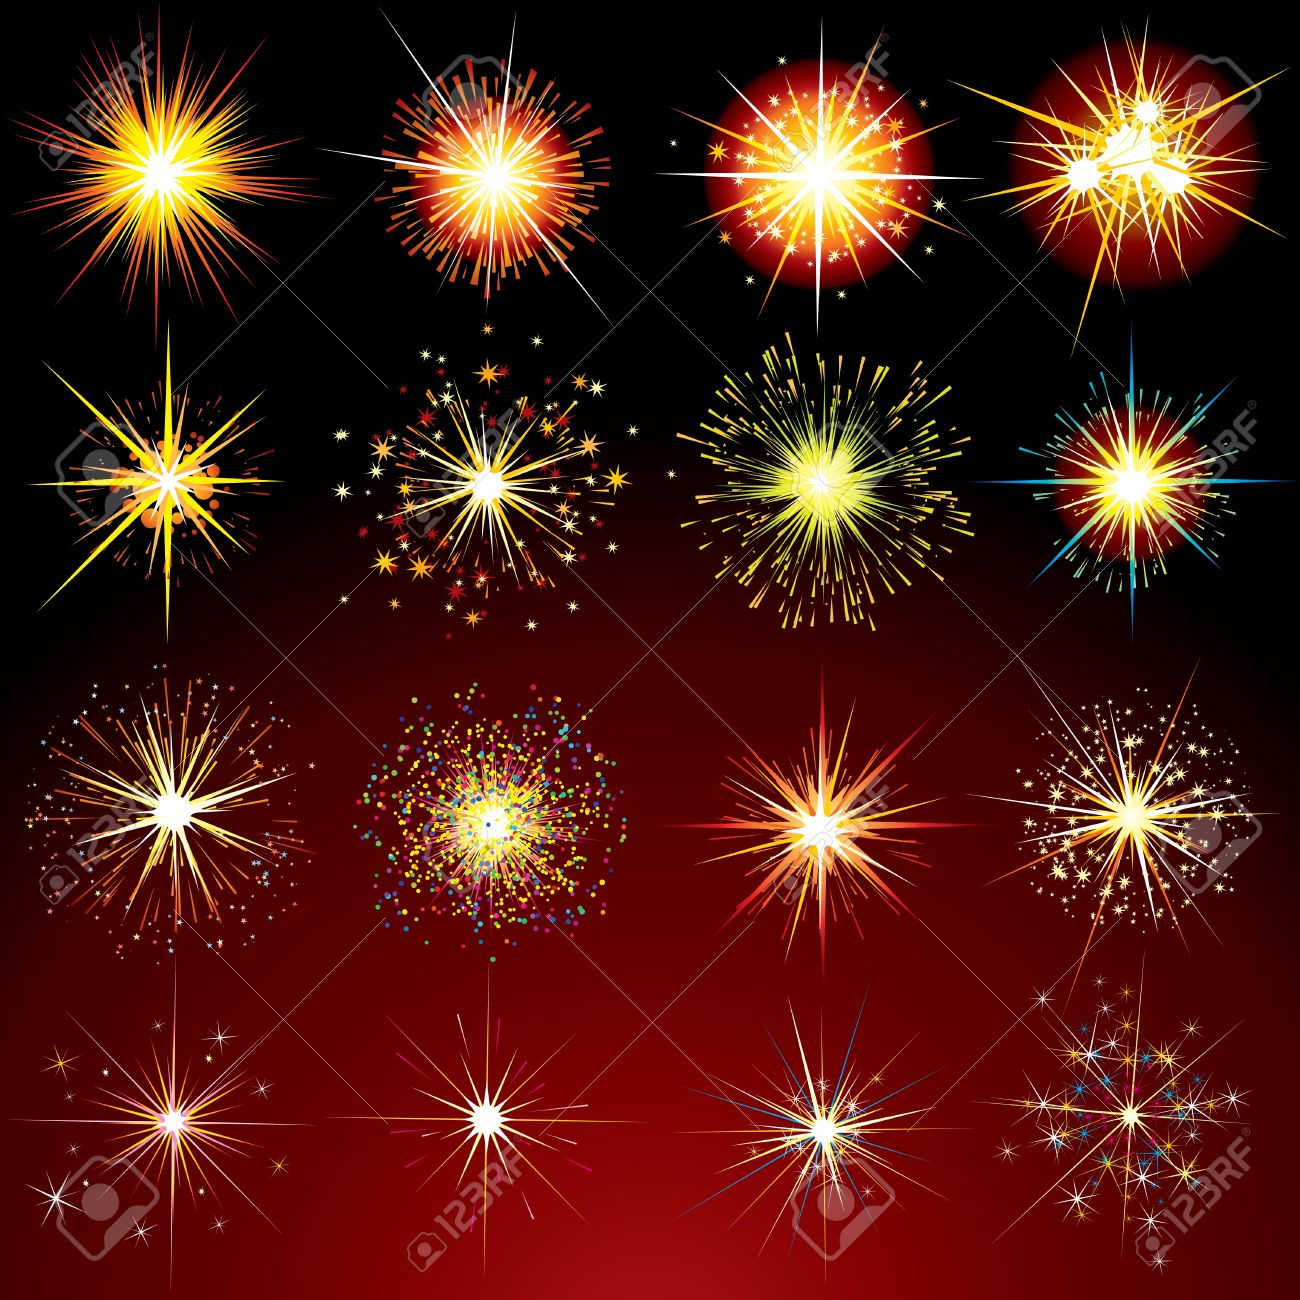 Brightly Stars, Flashes, Fireworks, Sparks and Flares variation - isolated vector design elements Stock Vector - 9569685